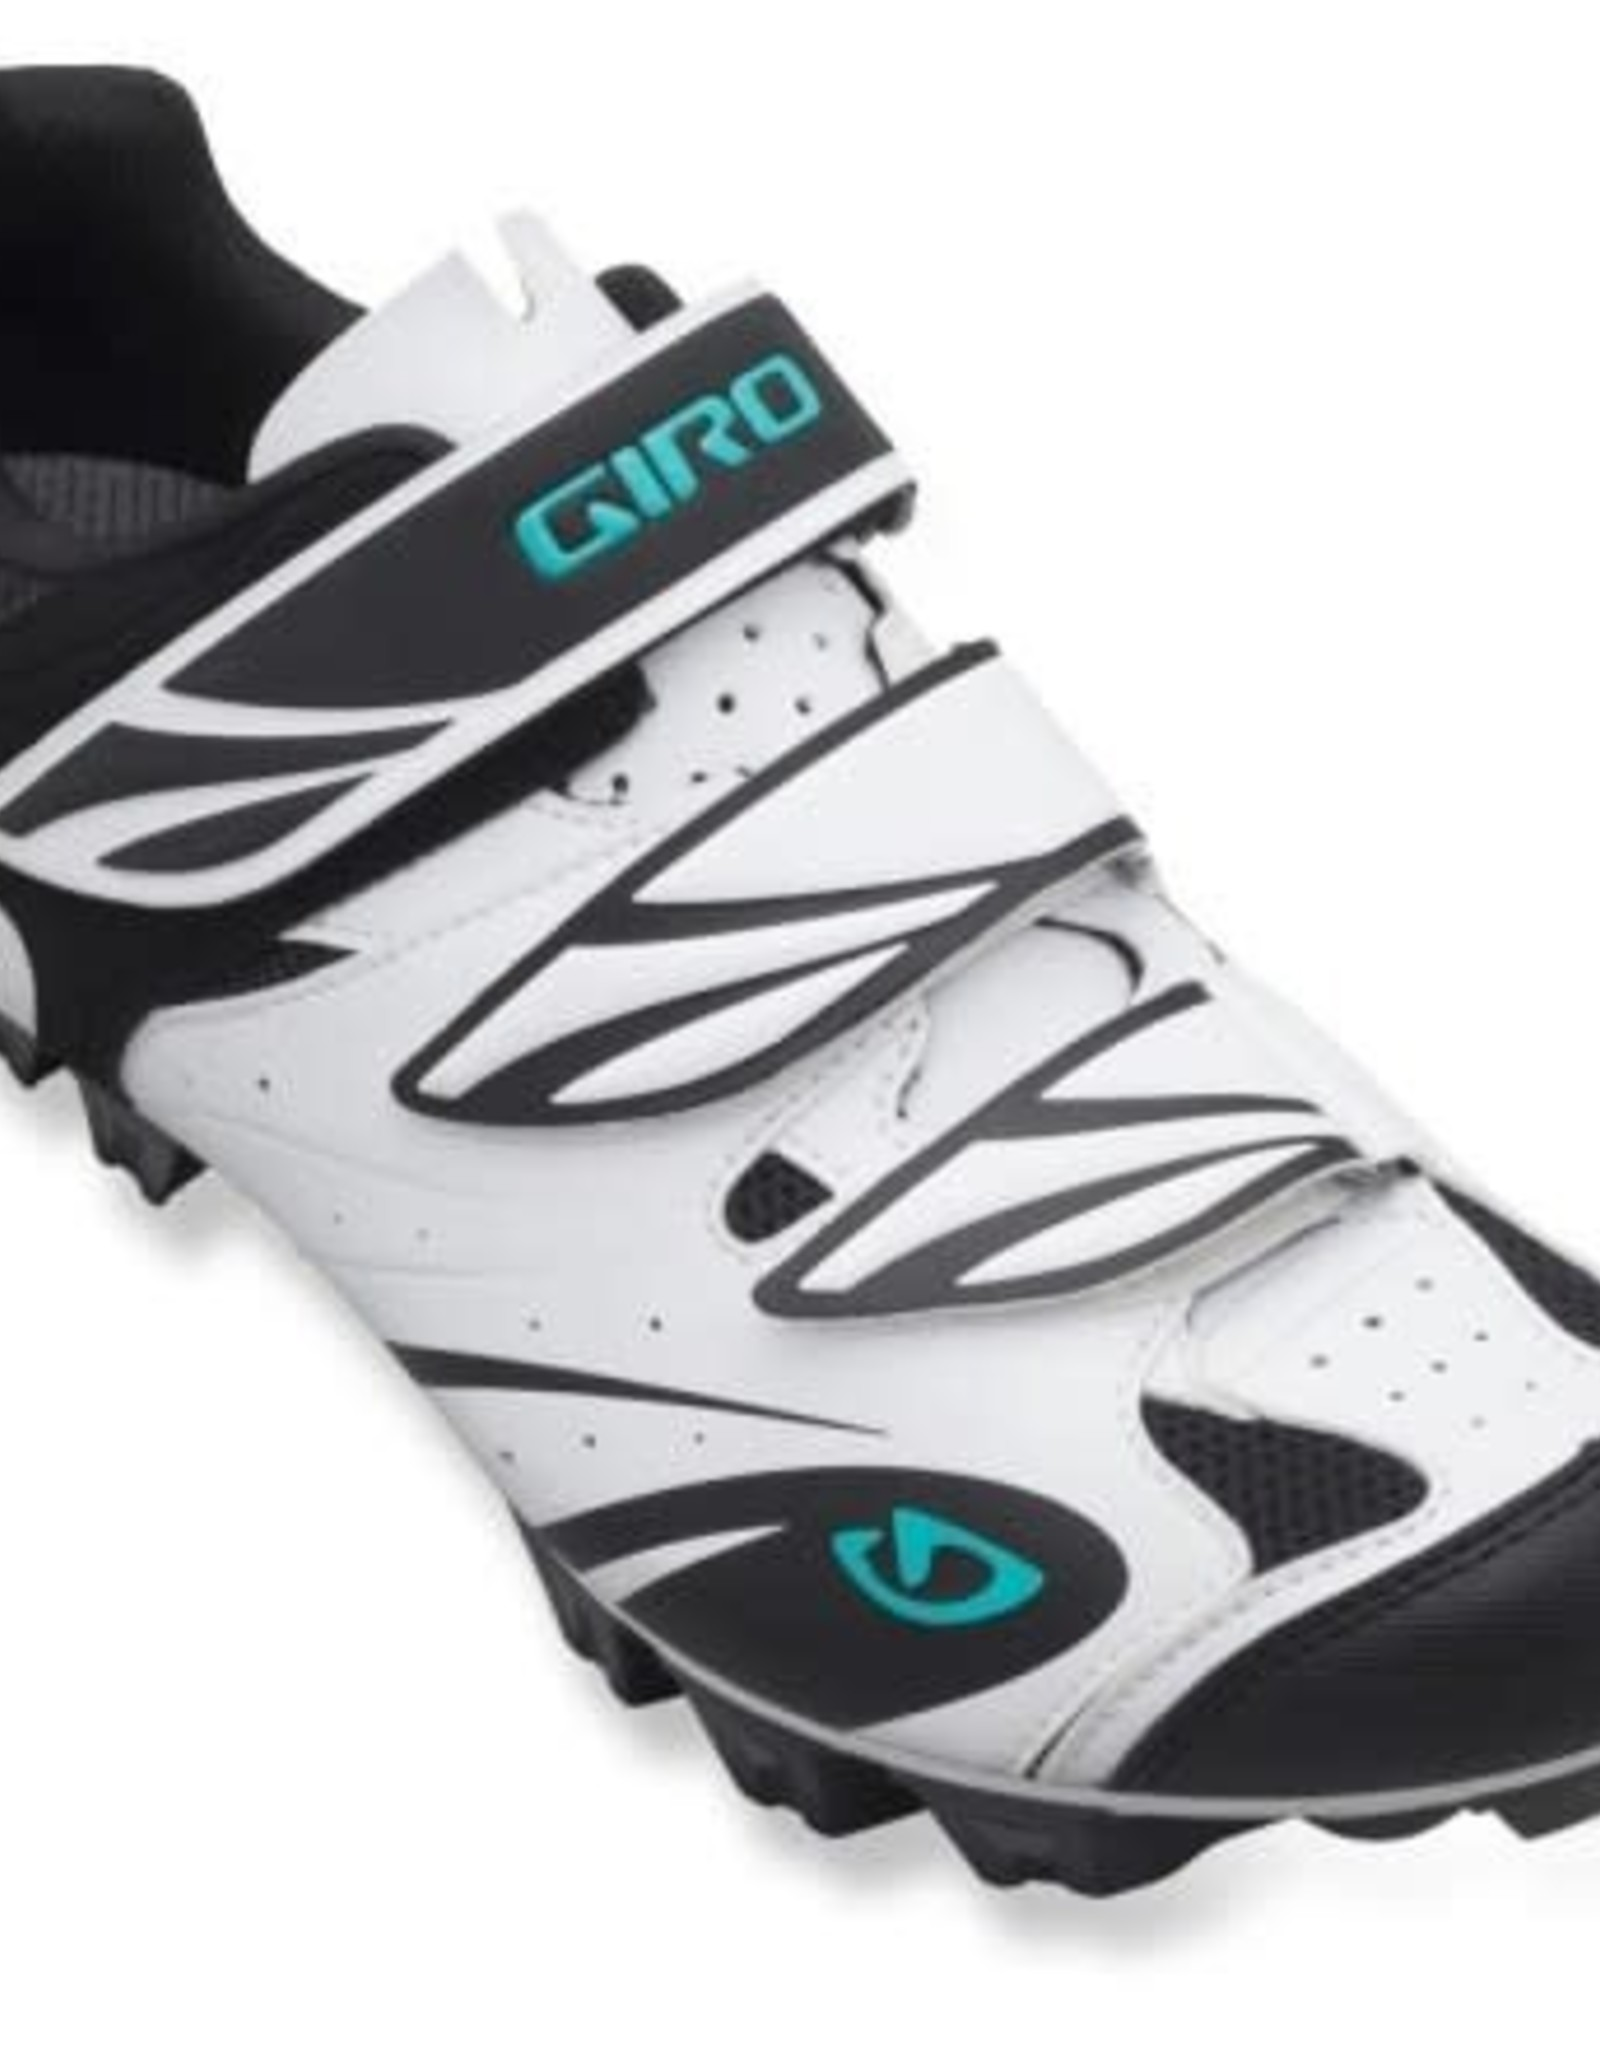 Giro GIRO Bike Shoes RIELA